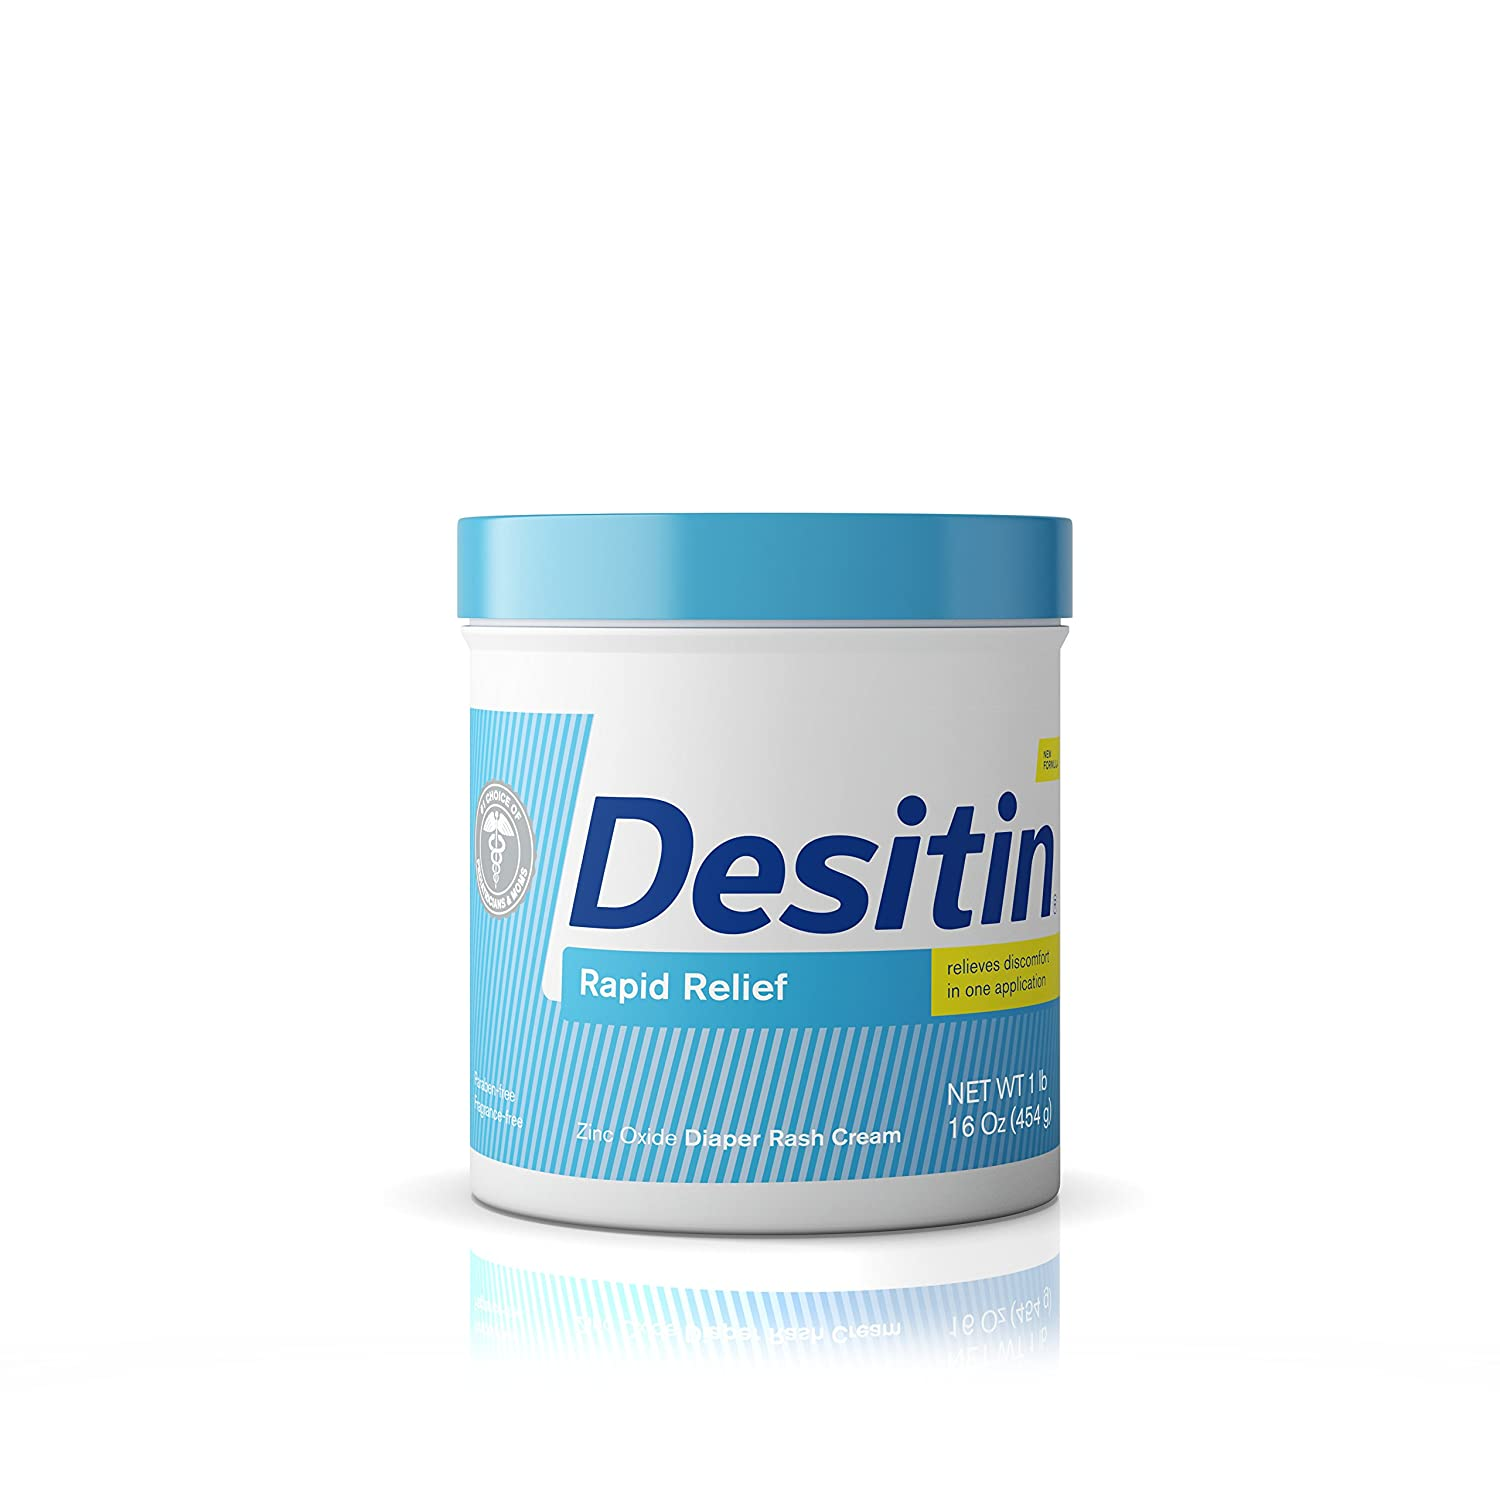 Desitin Rapid Relief Diaper Rash Remedy, Fragrance-Free Cream, 16 Oz. 074300495163